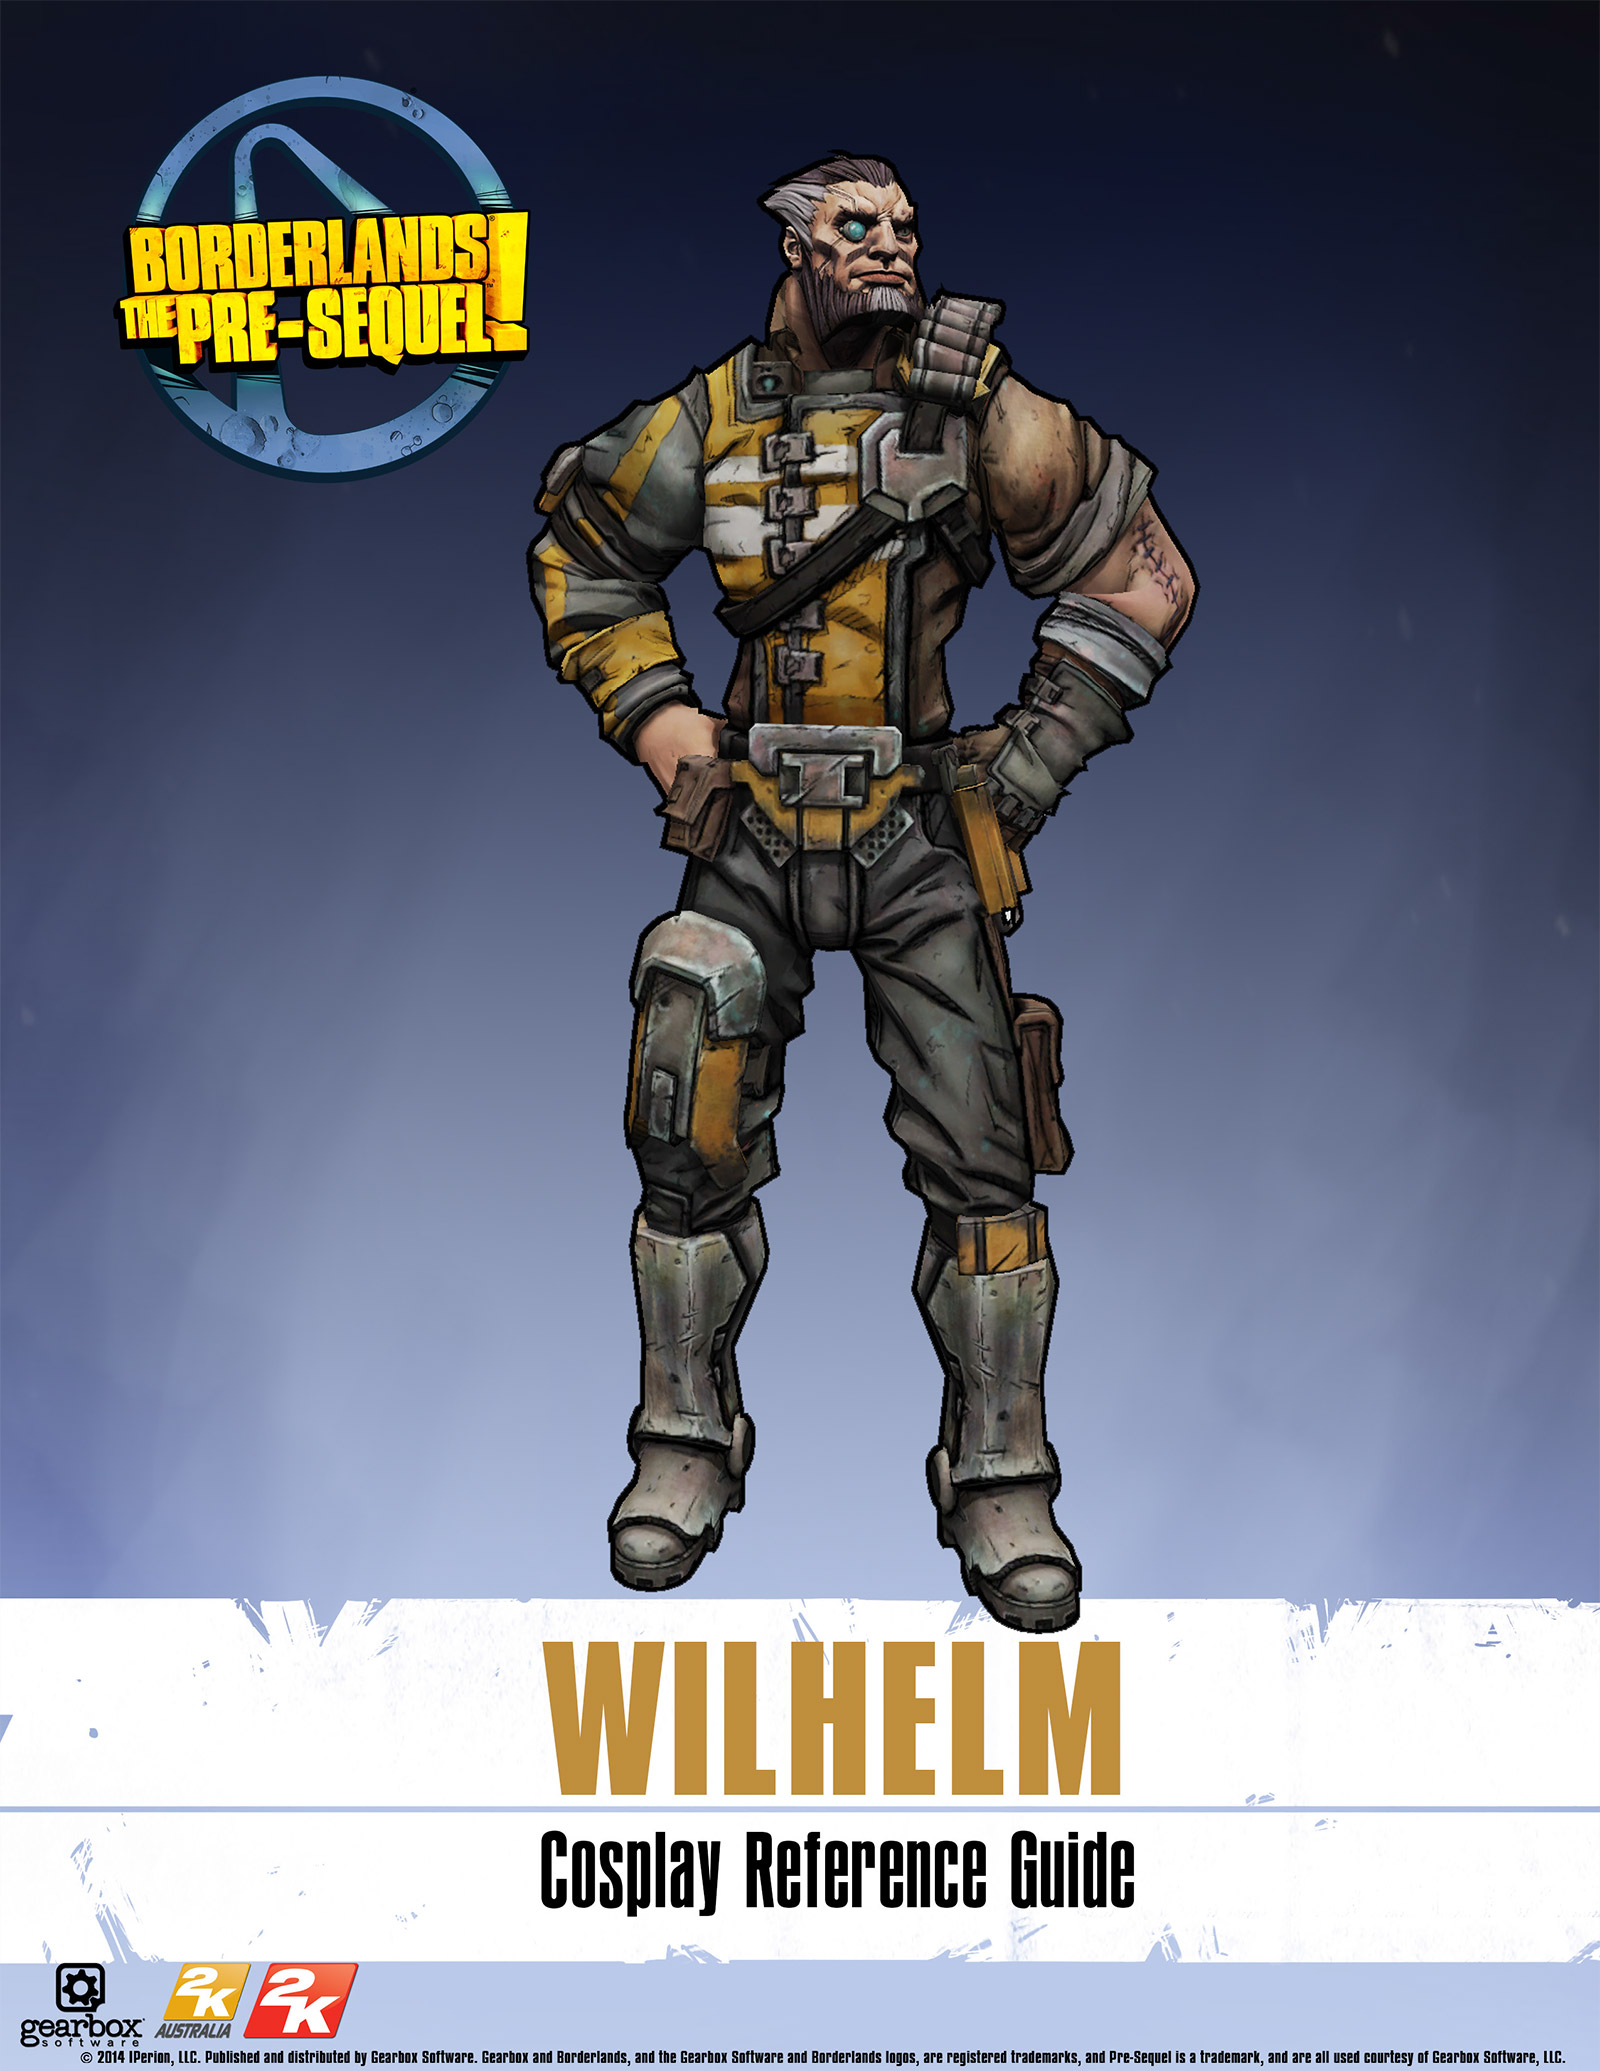 Borderlands: The Pre-Sequel Wilhelm Cosplay Reference Guide